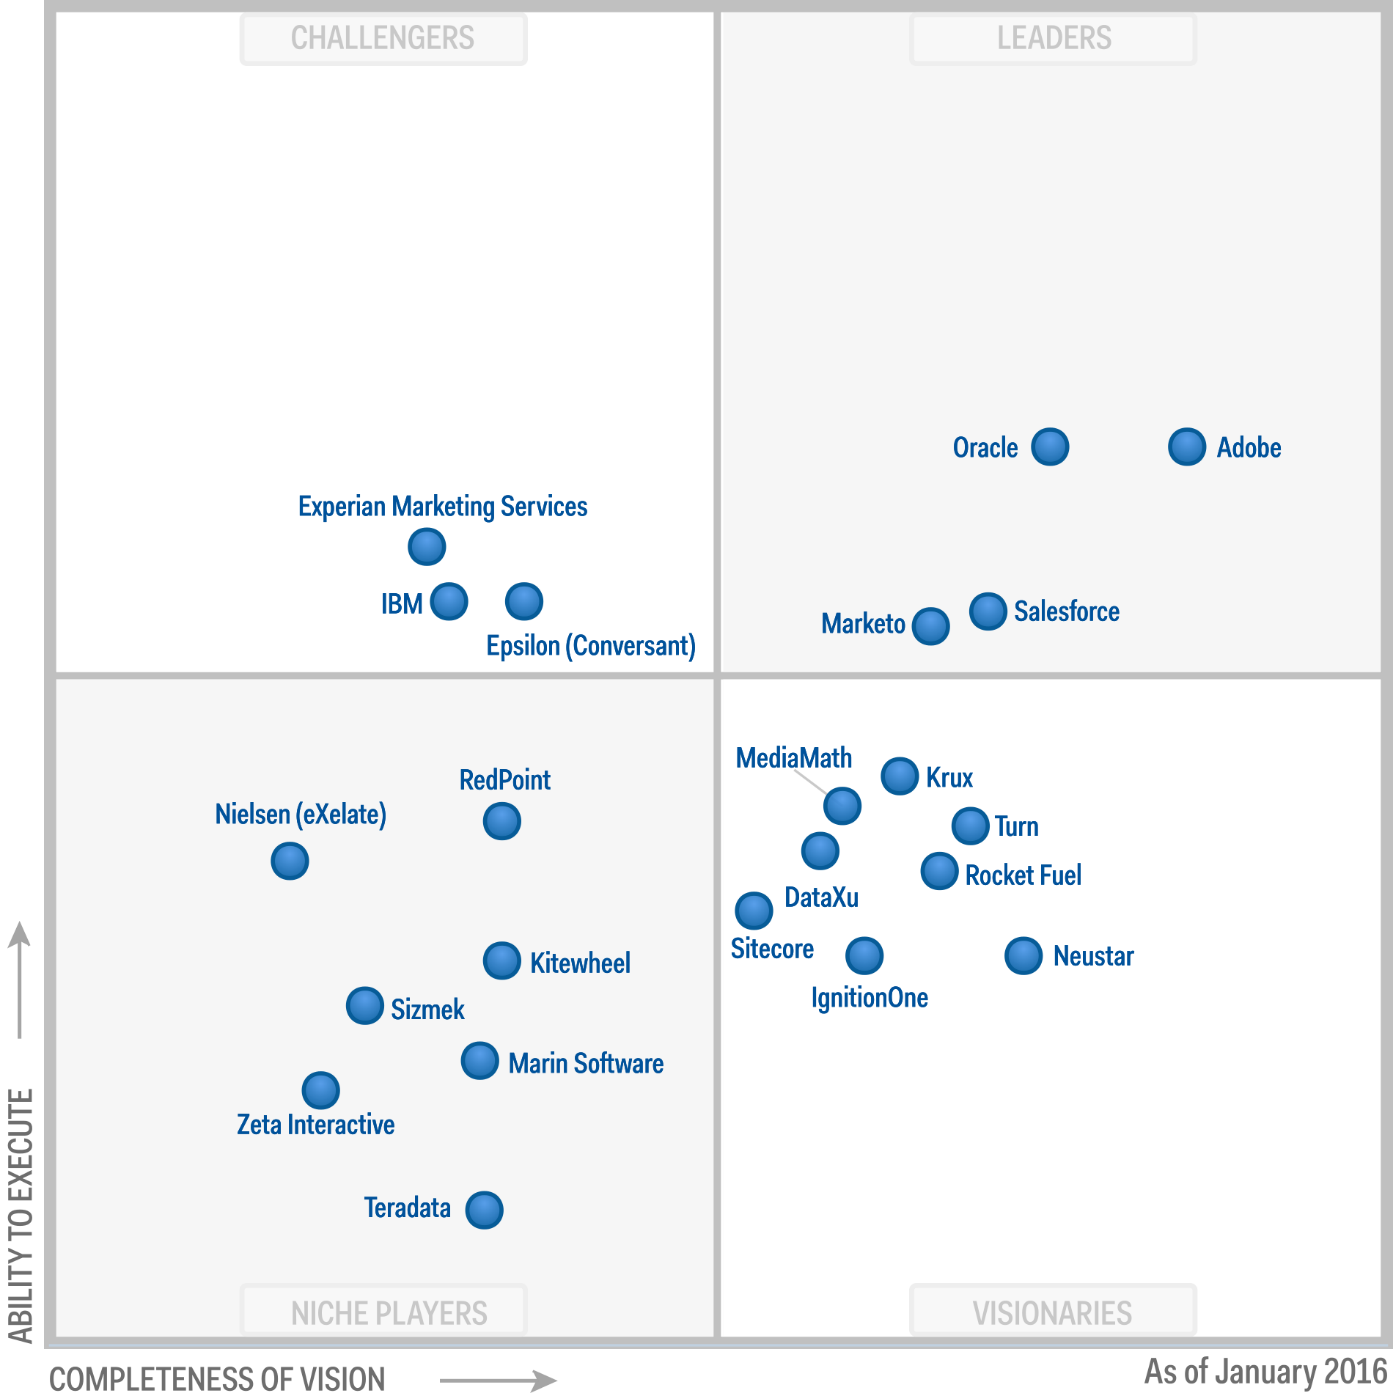 Magic Quadrant for Digital Marketing Hubs 2016 (G00273467)